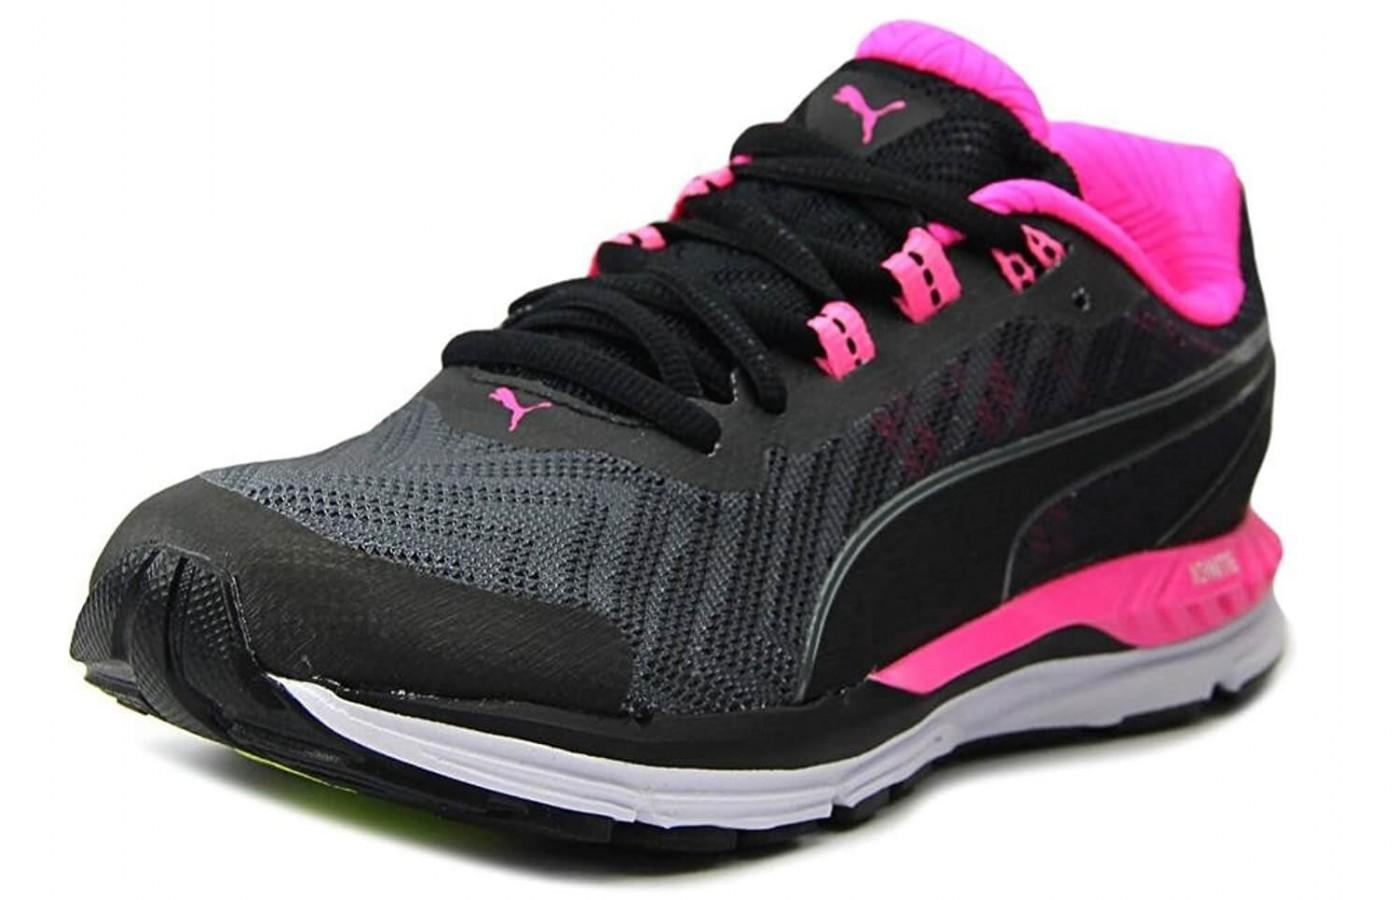 The Puma Speed Ignite 600 offers a unique bland of speed and cushioning.